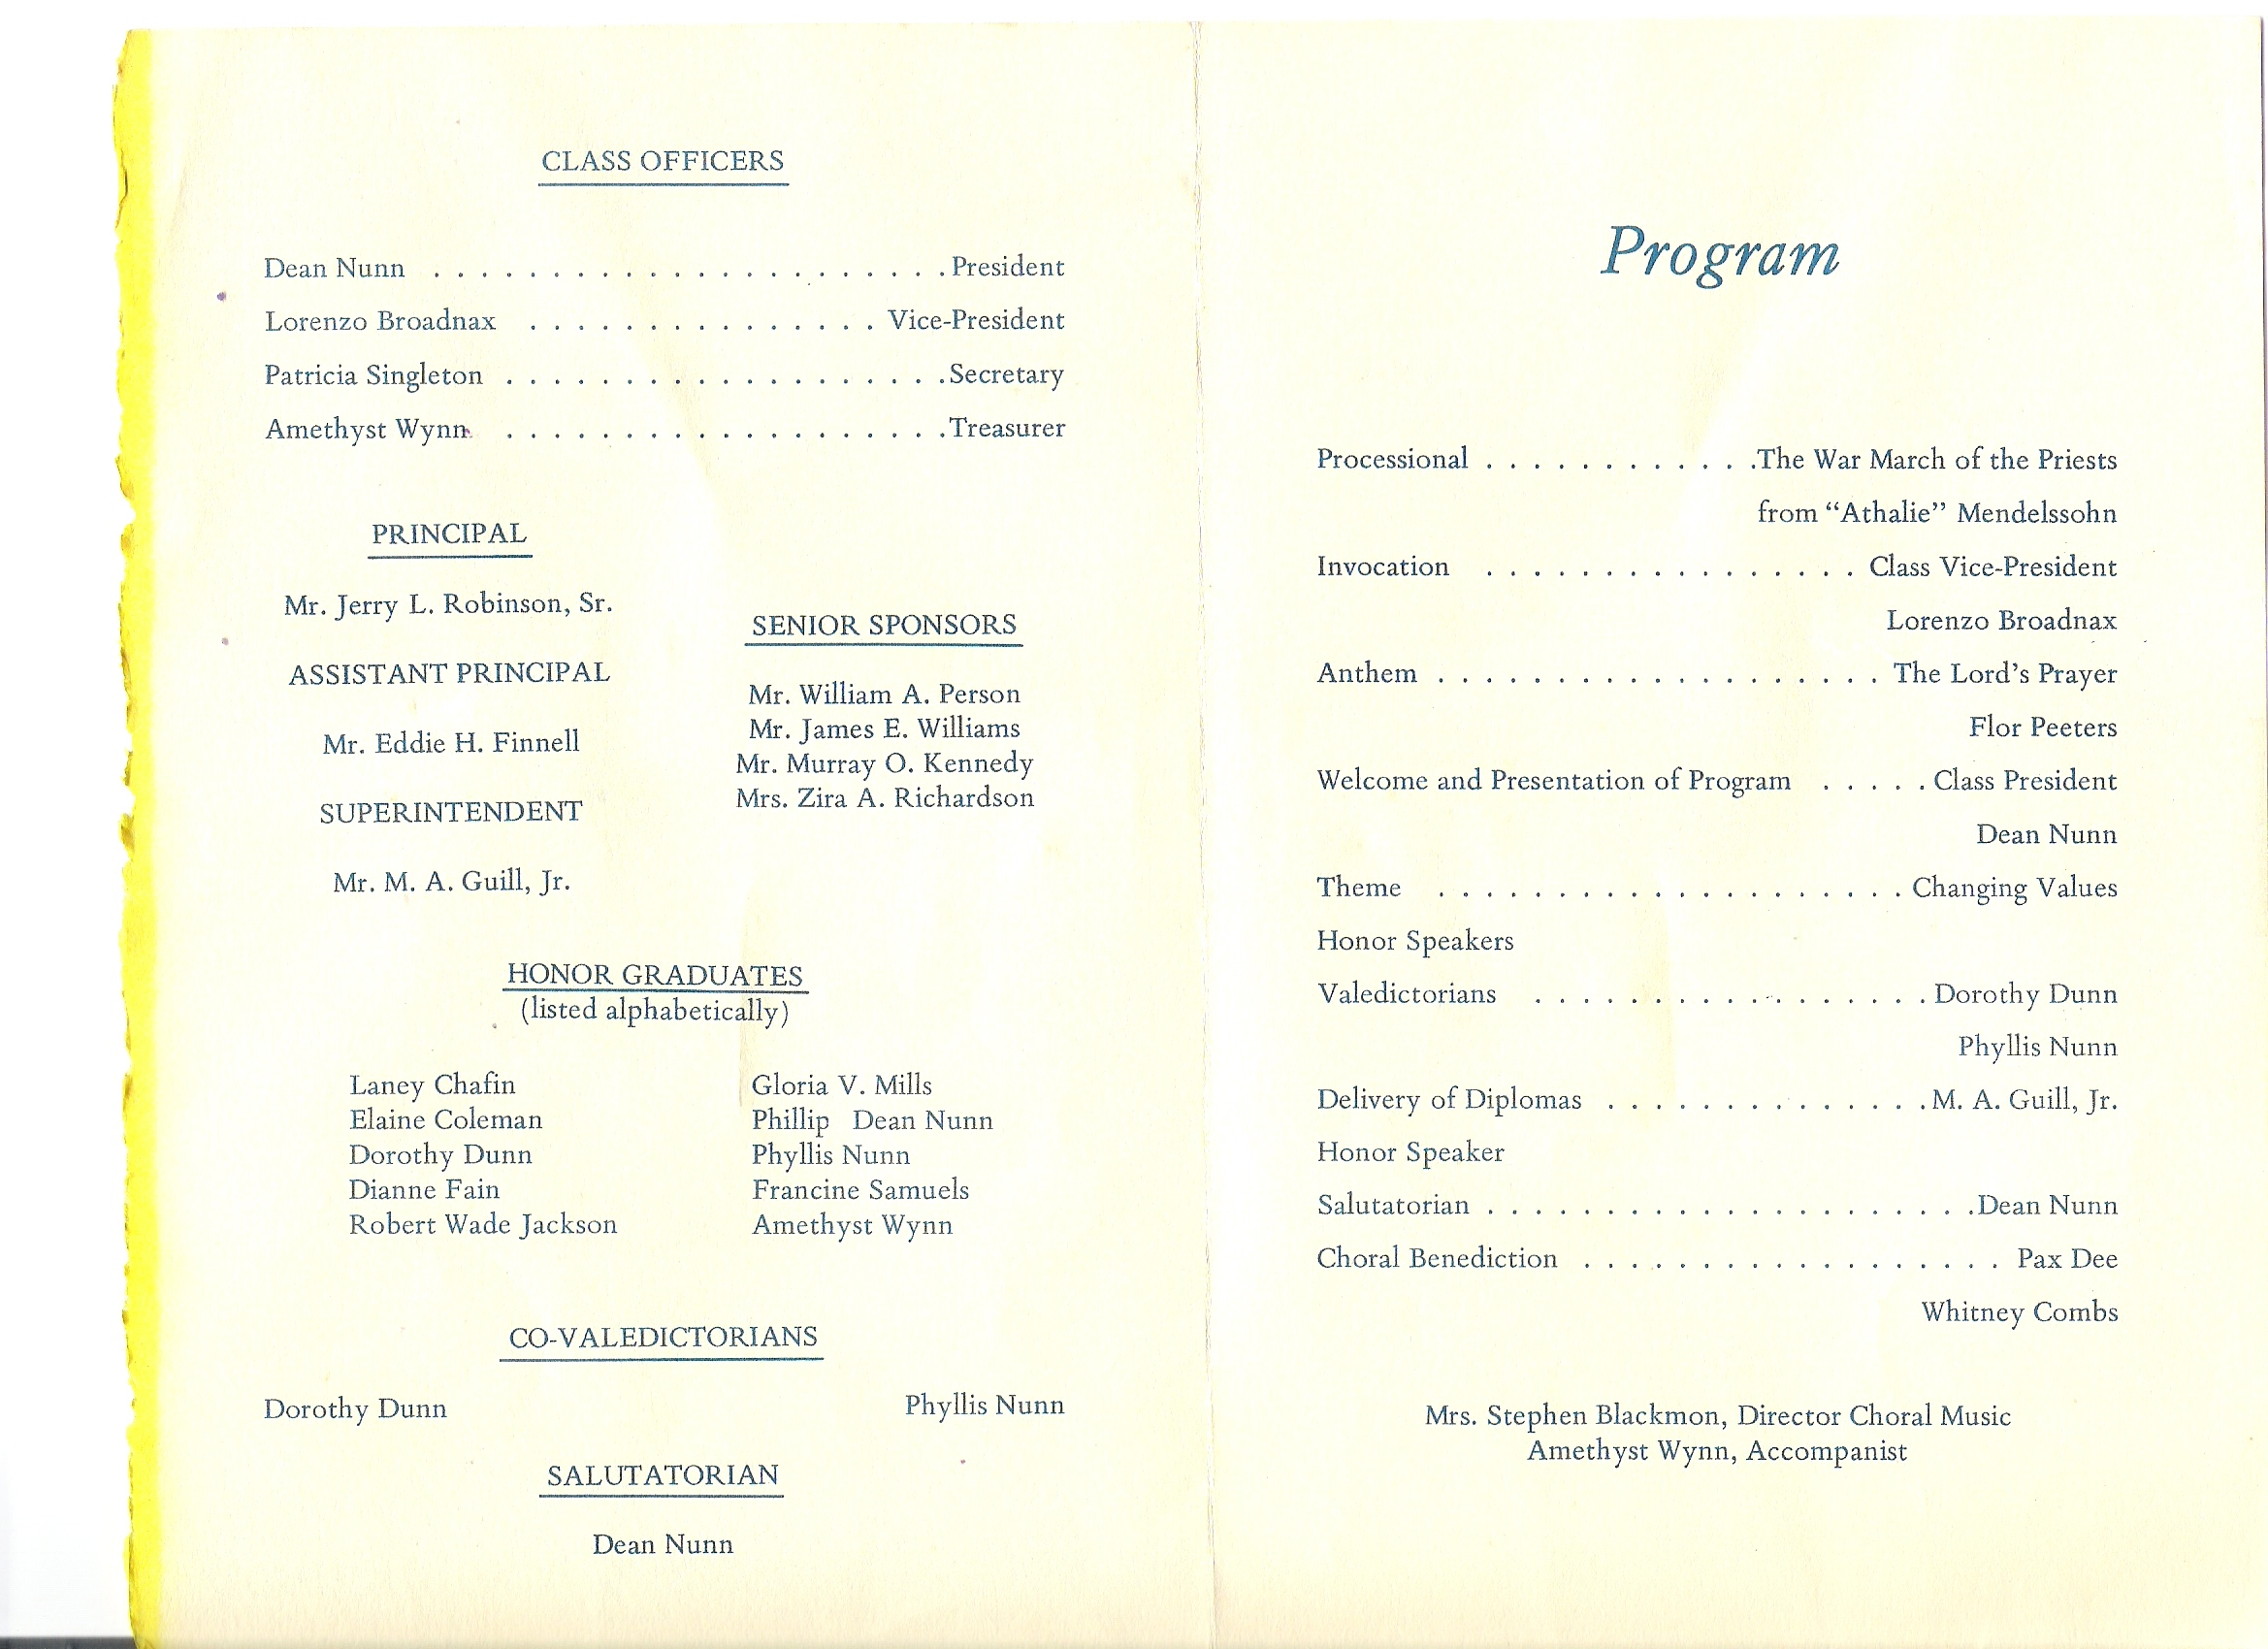 church banquet program template QidqiFb3